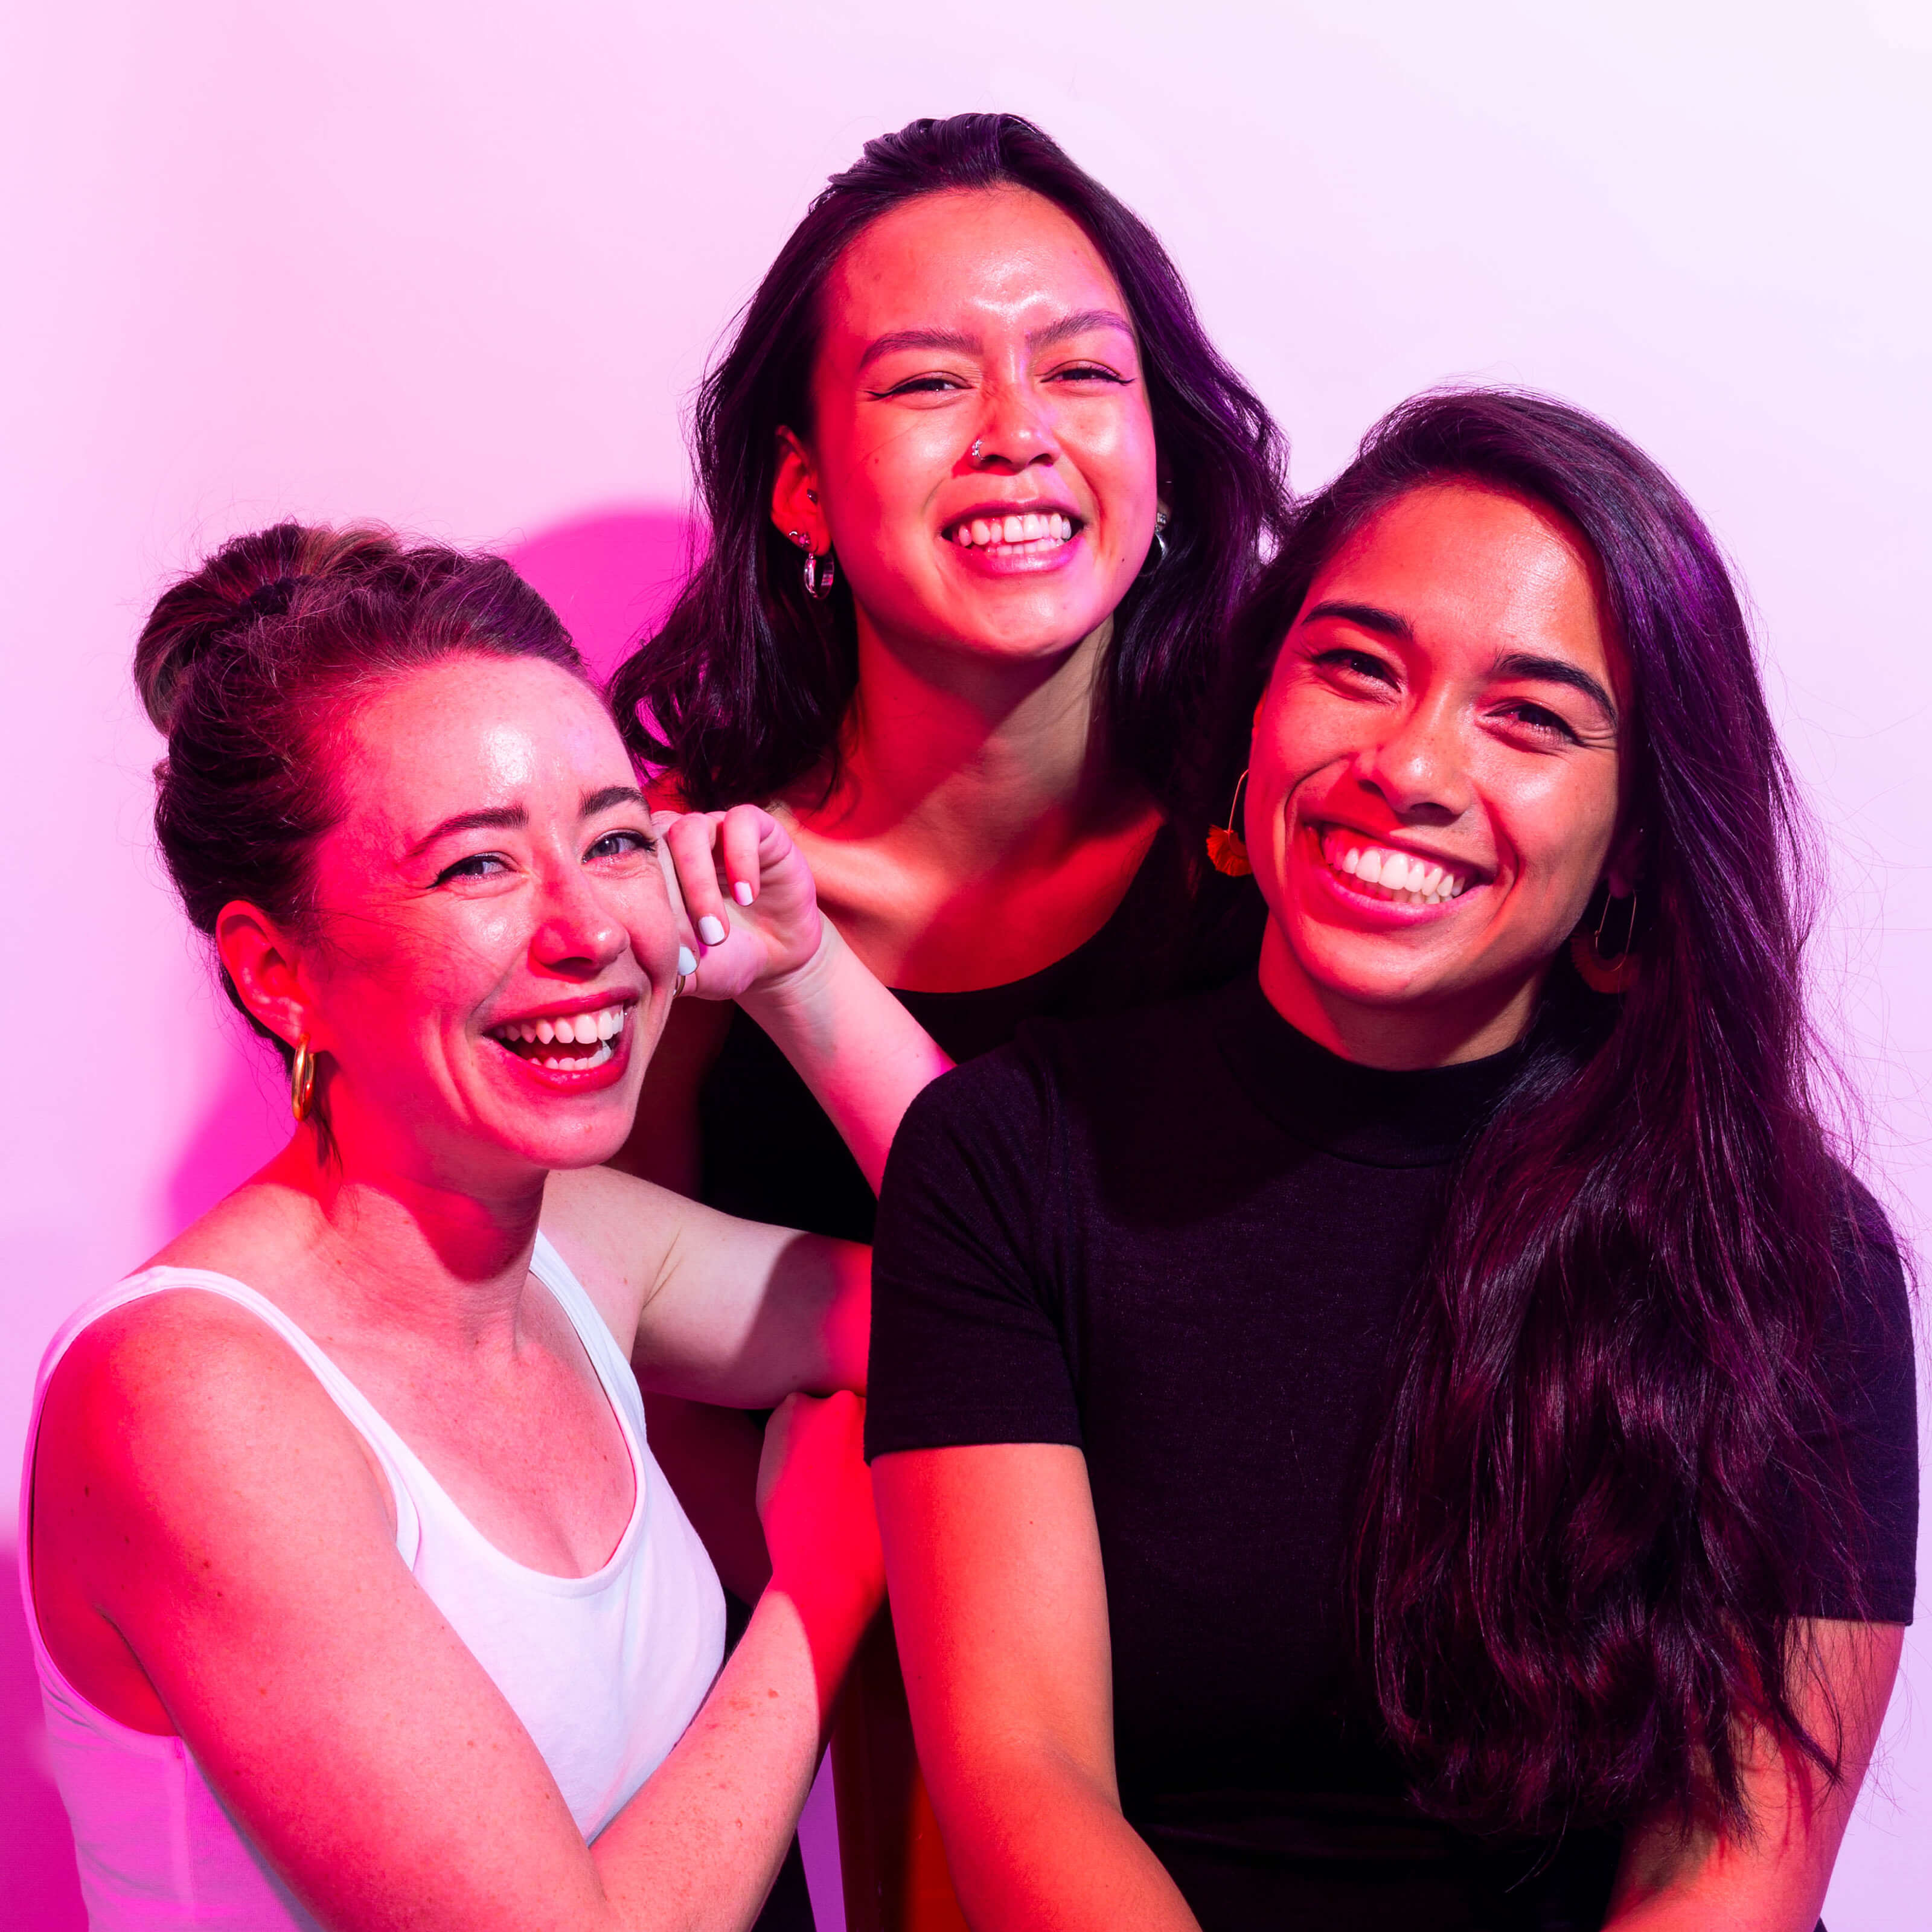 Ovee: A New Digital Health Hub for People With Vaginas